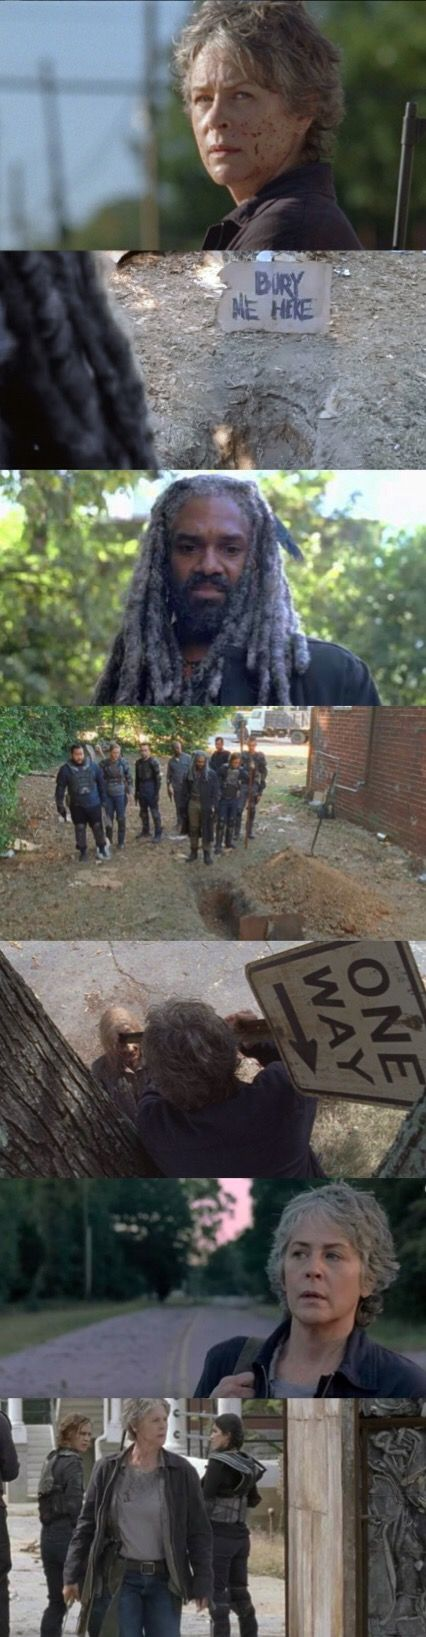 """The Walking Dead Season 7B Episode 13 'Bury Me Here' - Carol Peletier looks for Morgan at the Kingdom.  The King and the Kingdom Krew make a delivery of """"12 melons"""" to the Saviors but are deceived by one of their own. Benjamin gets shot because of the deception. Morgan deals with the deceptive one by remembering his past """"Clear"""" and finally tells Carol the truth about the Alexandria group. King Ezekiel is approached by Carol who is now in agreement but """"Not today"""". Morgan leaves the Kingdom."""